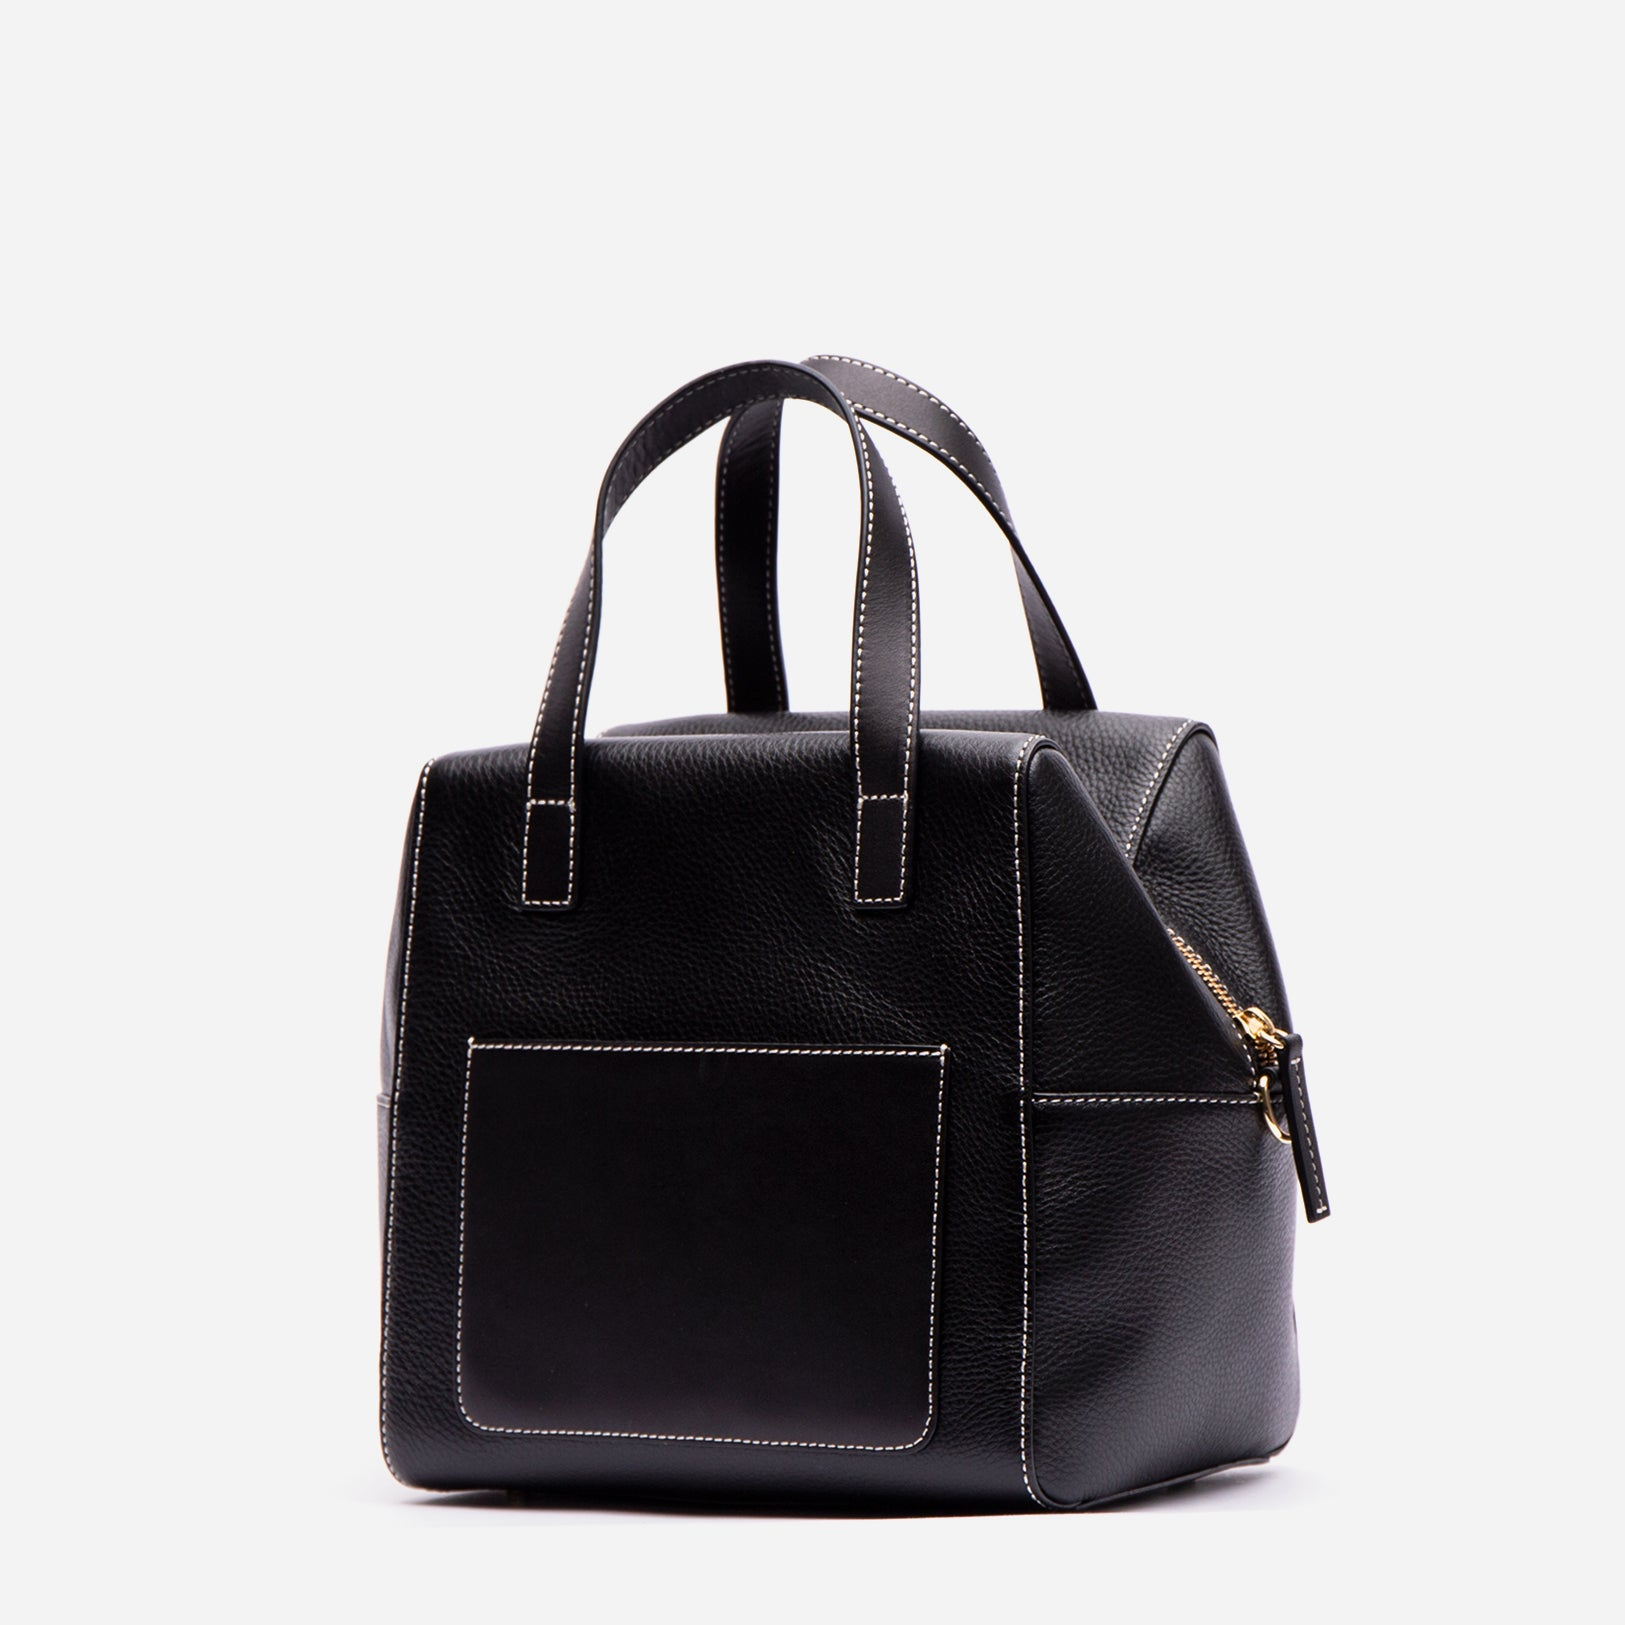 Sabrina Satchel Tumbled Leather Black